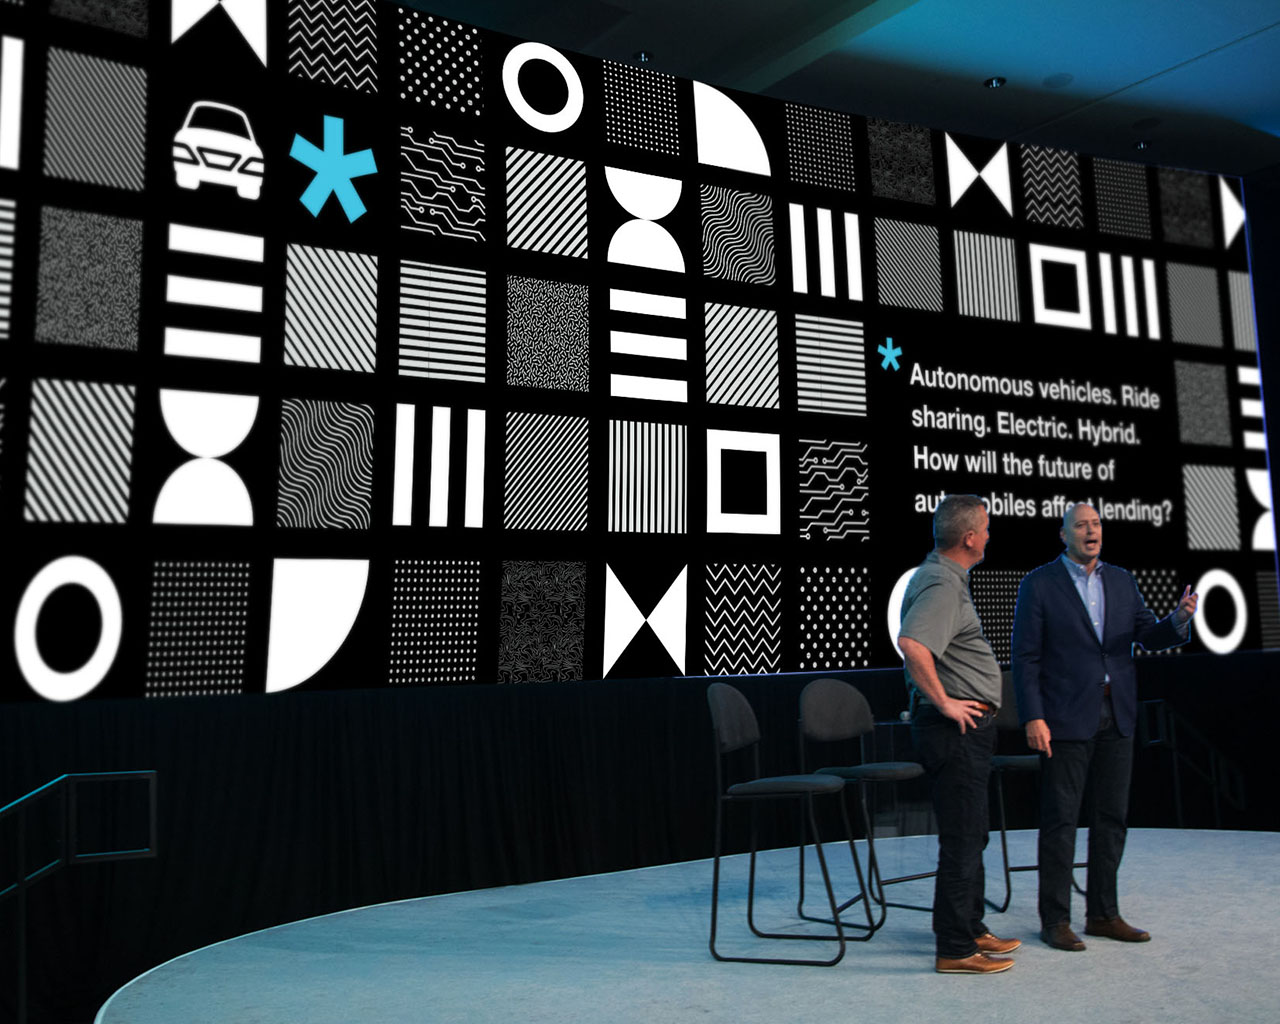 CBA LIVE 2020 stage with speakers and branded textures and asterisk on the screen